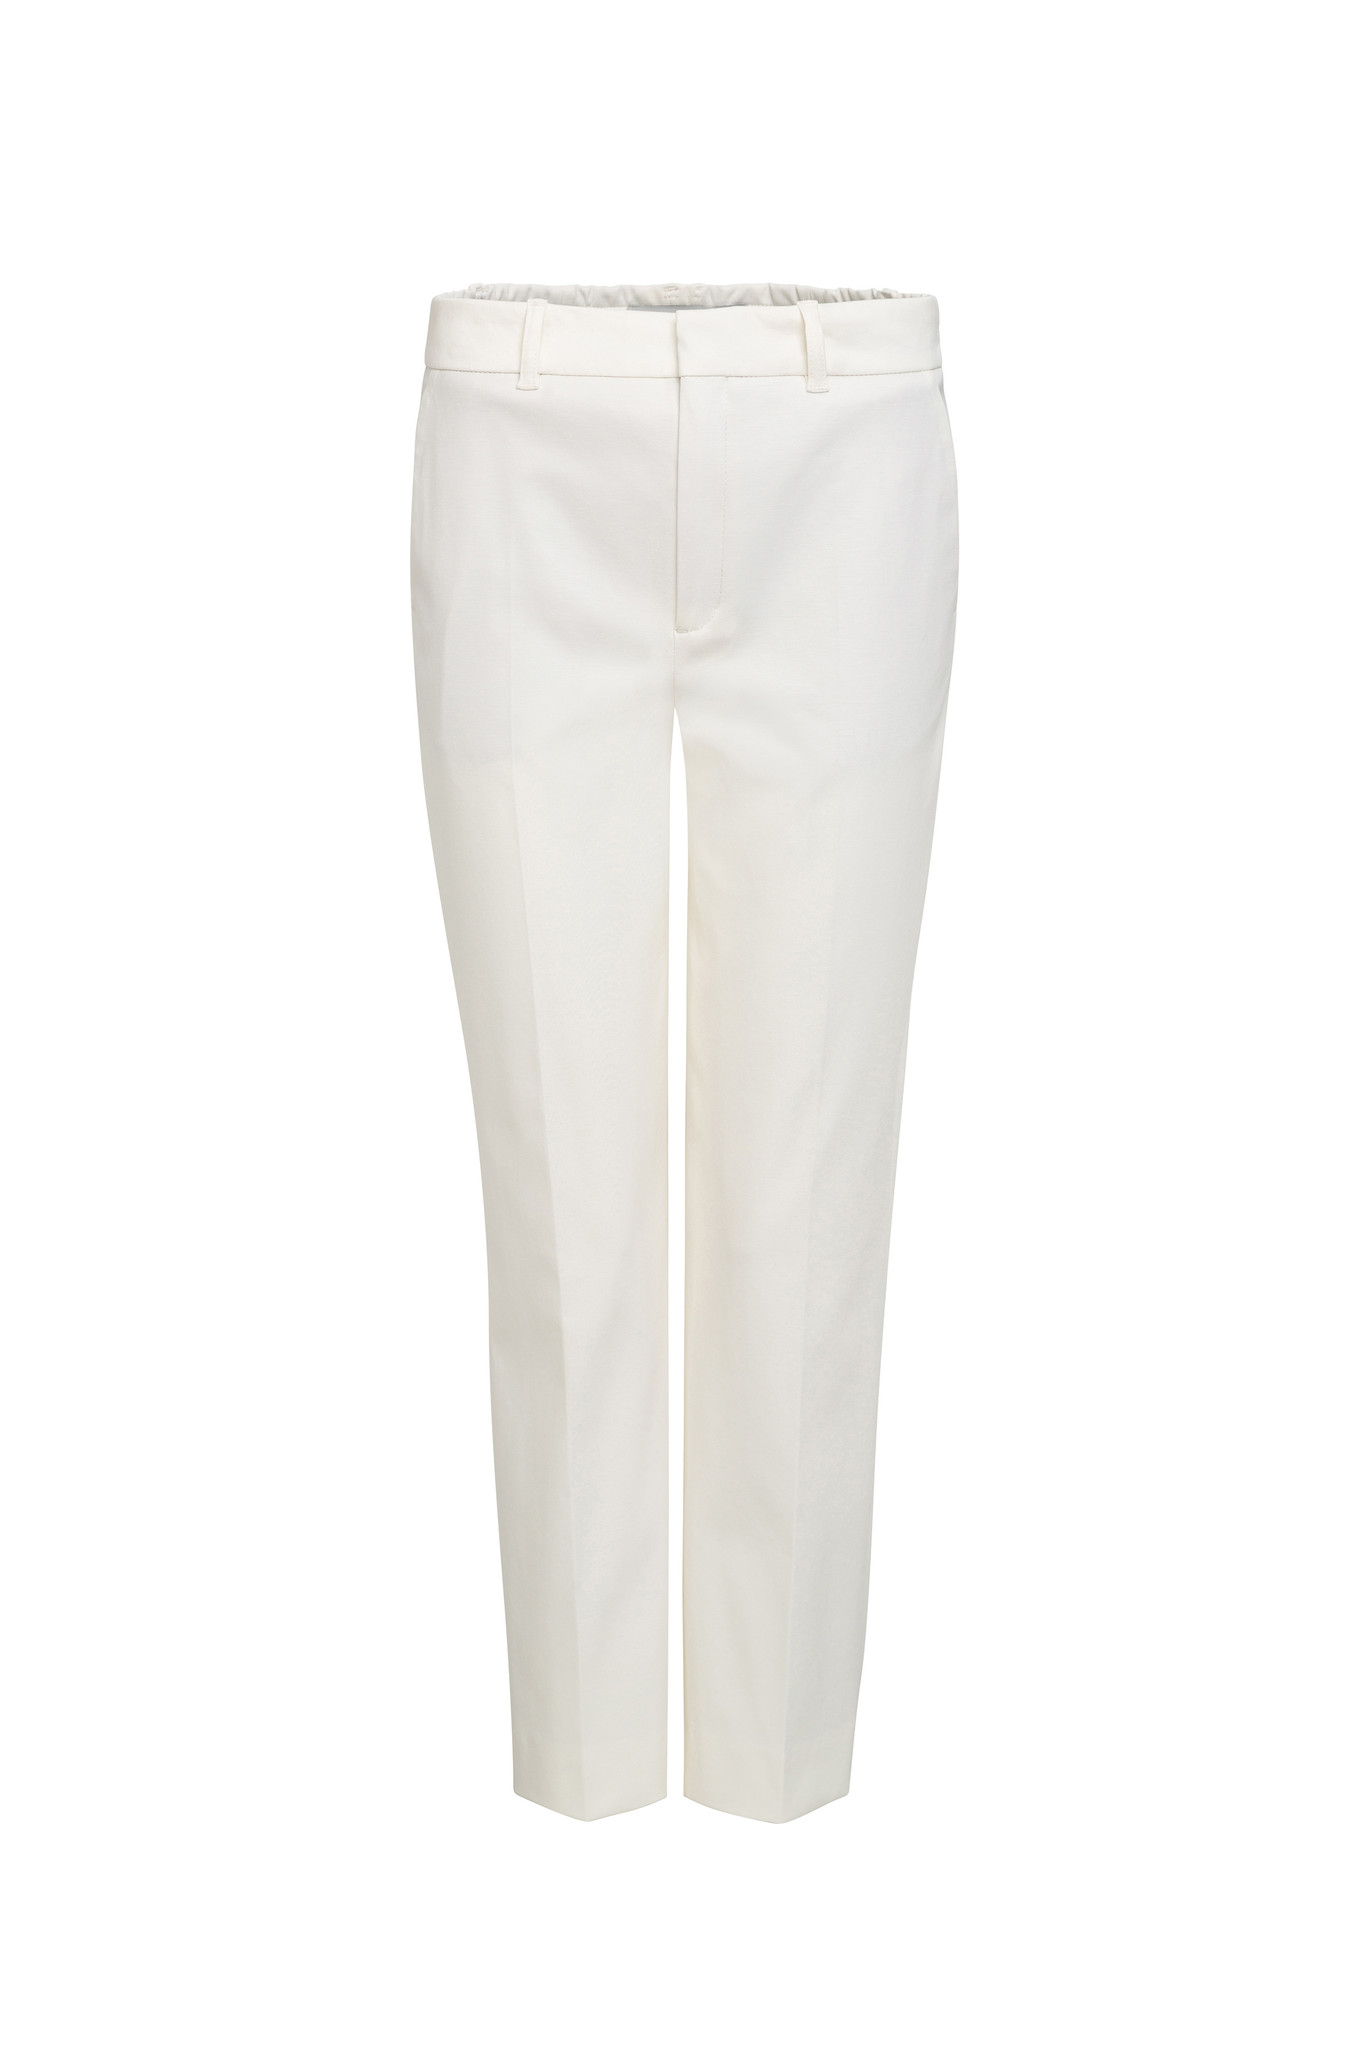 drykorn Trouser 136144 SEARCH-1